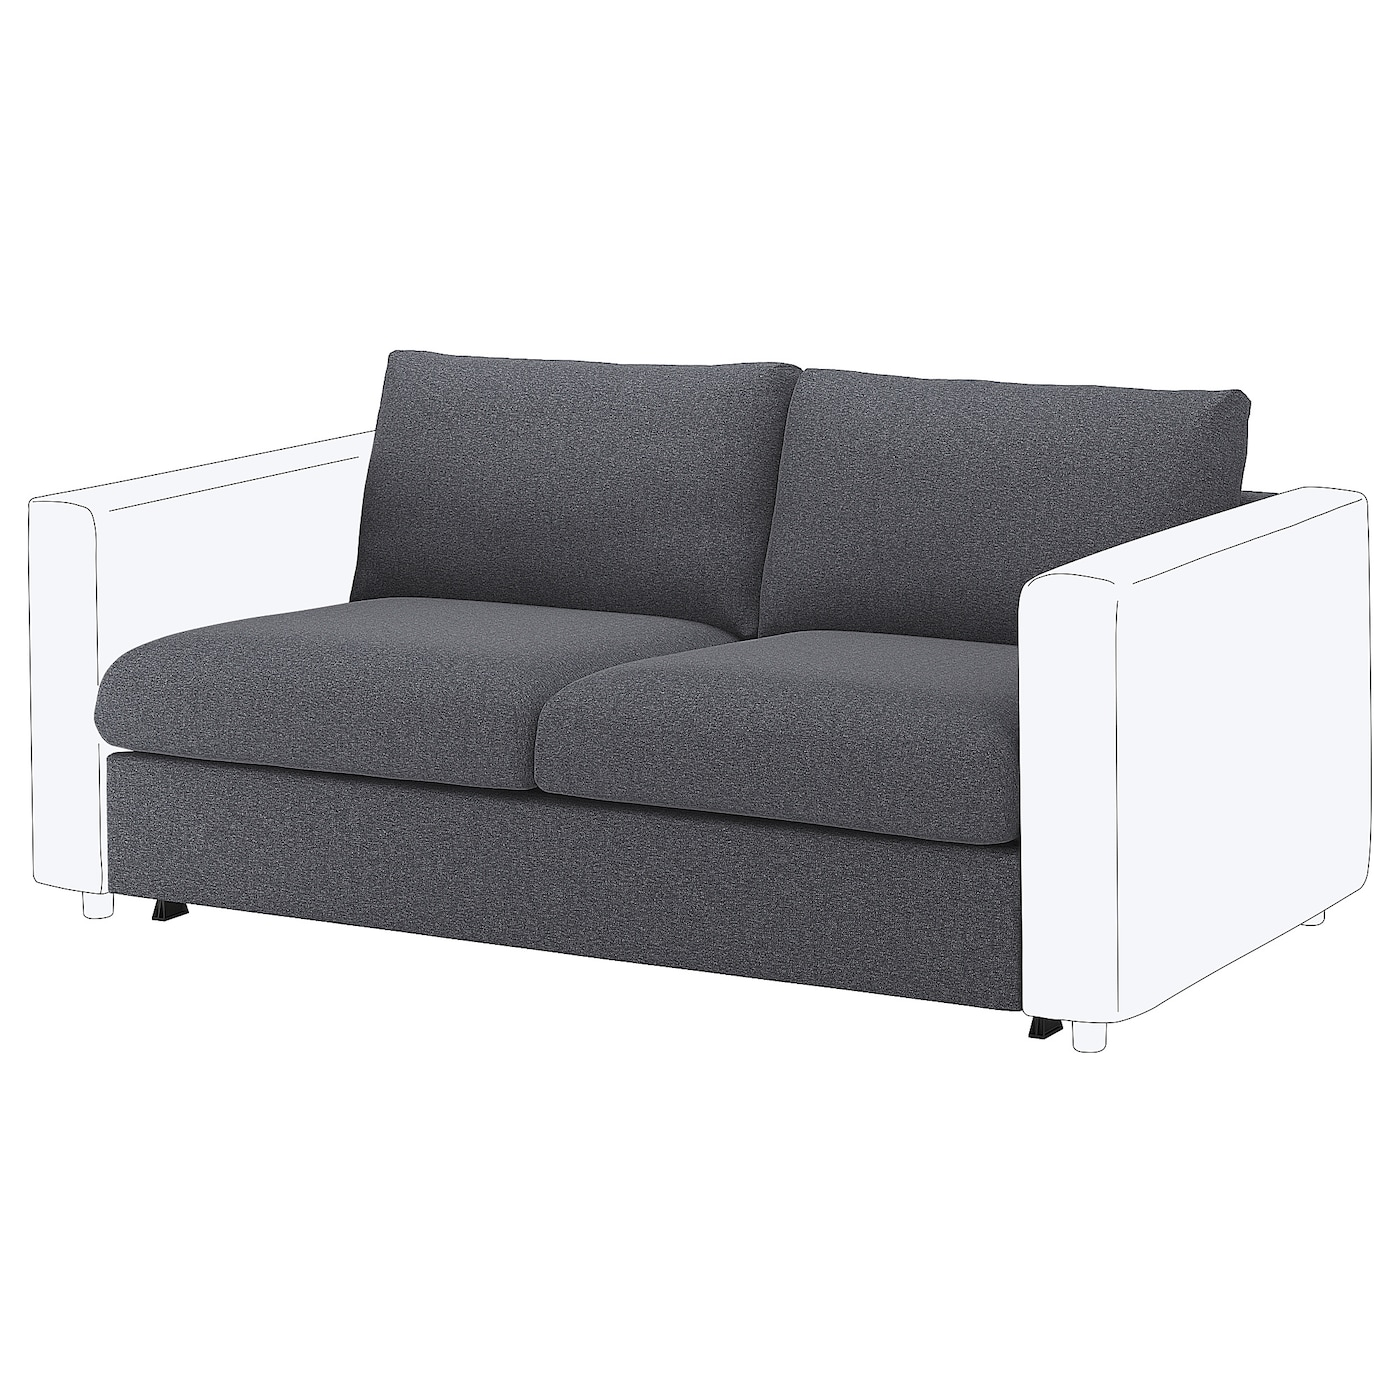 Finnala Loveseat Sleeper Section